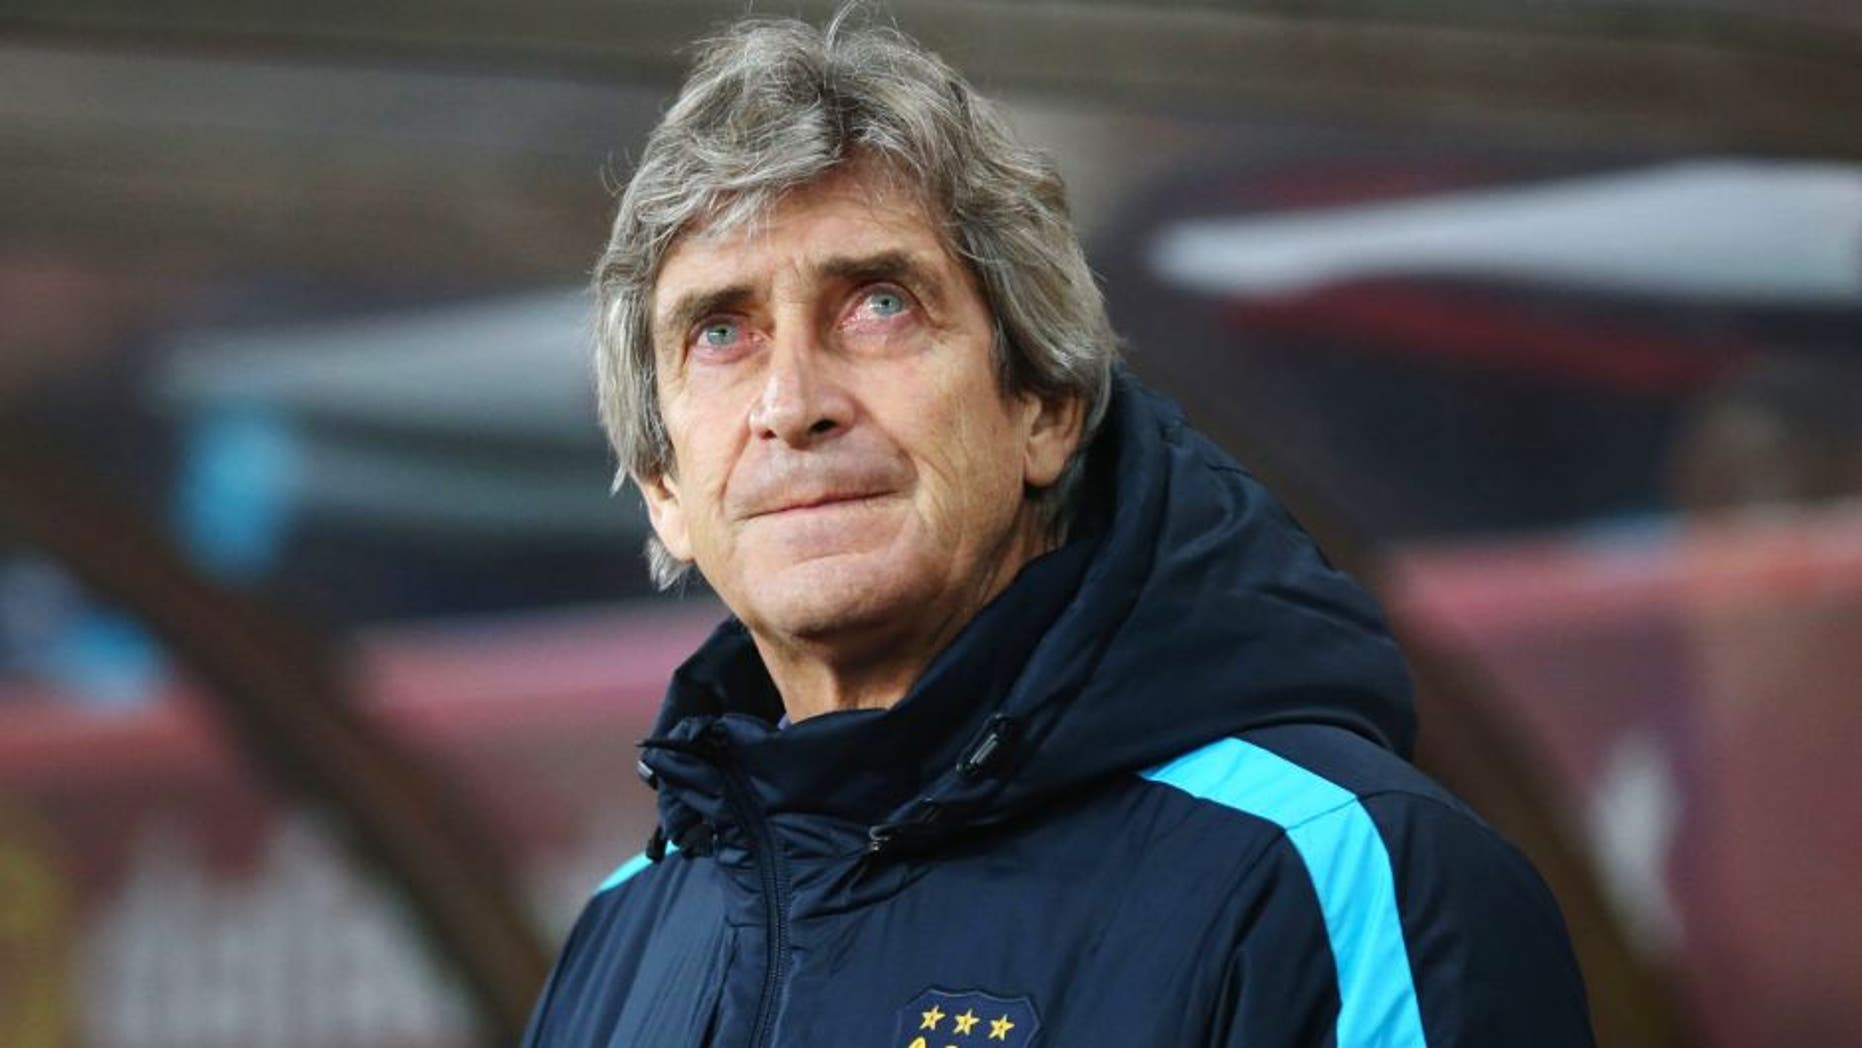 SUNDERLAND, ENGLAND - FEBRUARY 02: Manuel Pellegrini, manager of Manchester City looks on prior to the Barclays Premier League match between Sunderland and Manchester City at the Stadium of Light on February 2, 2016 in Sunderland, England. (Photo by Ian MacNicol/Getty Images)